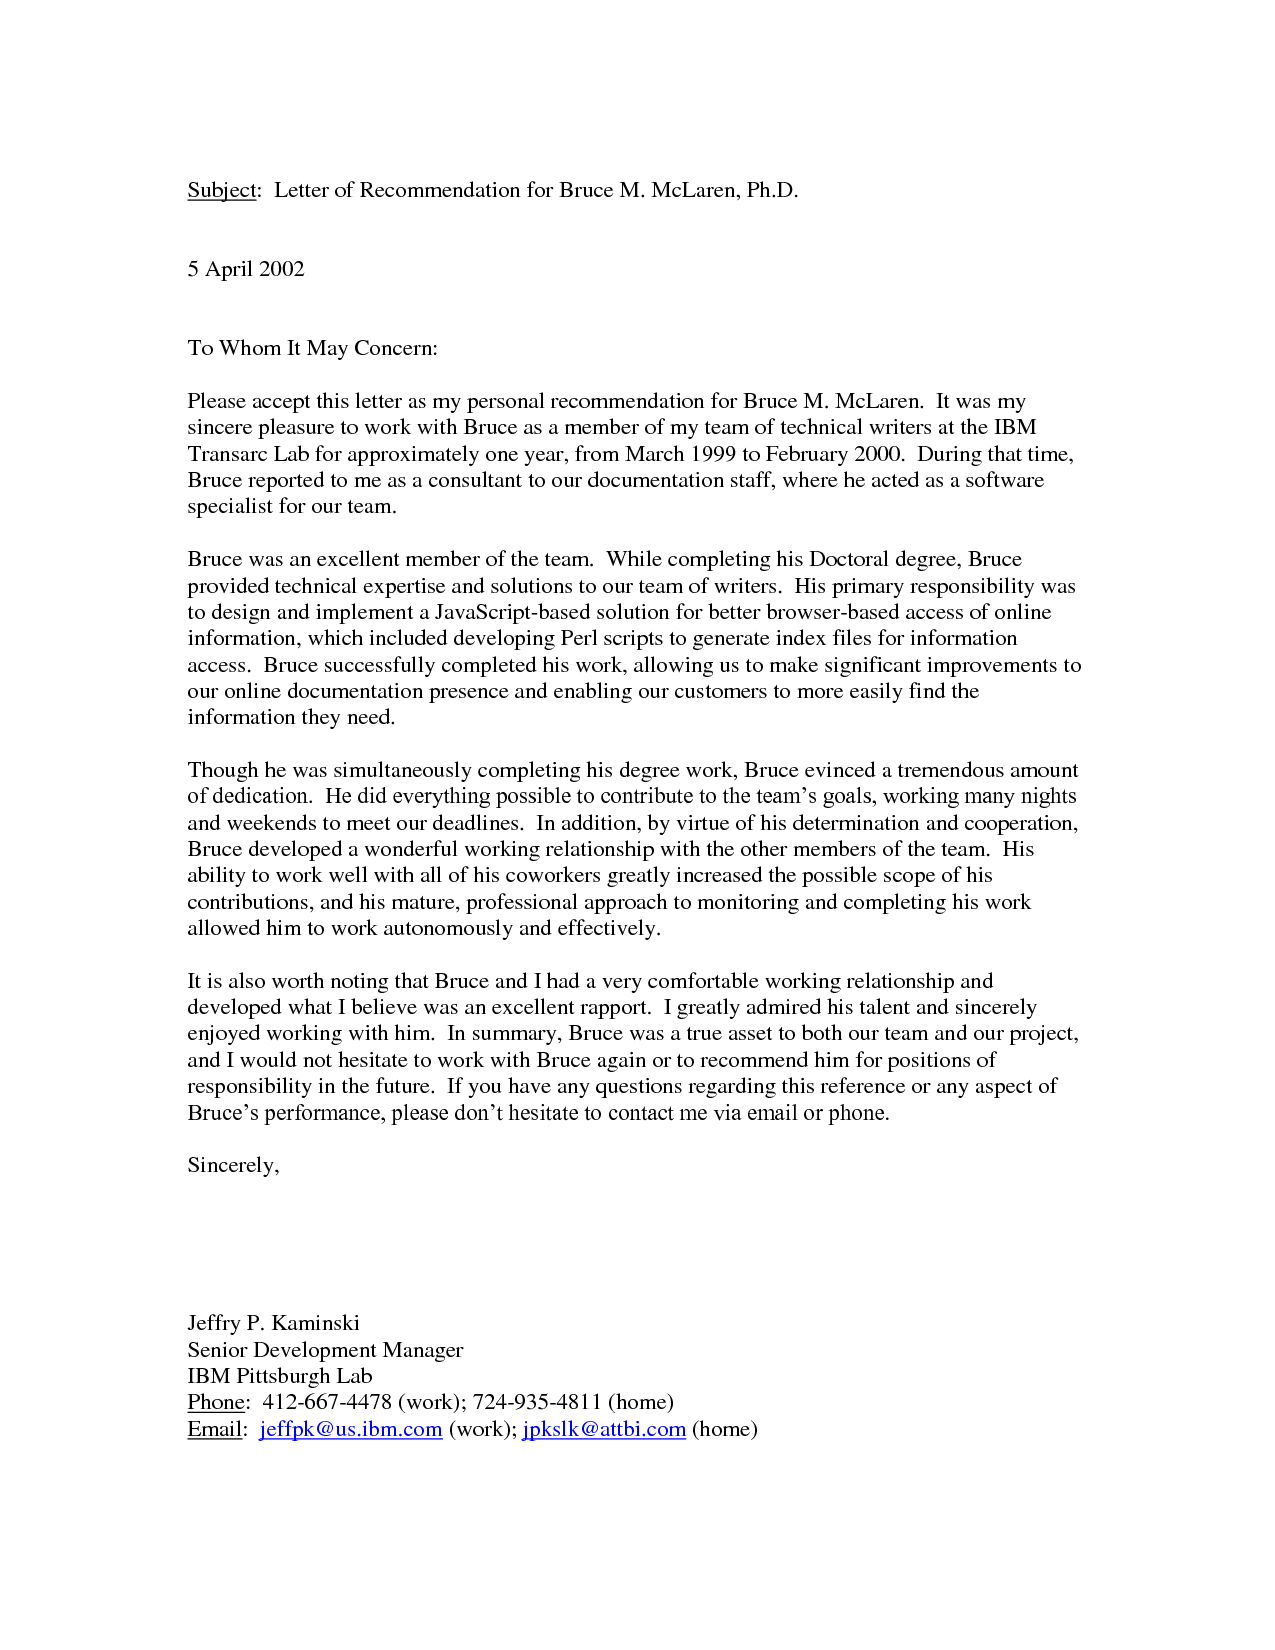 Personal reference letter of recommendationletter of recommendation personal reference letter of recommendationletter of recommendation formal letter sample maxwellsz